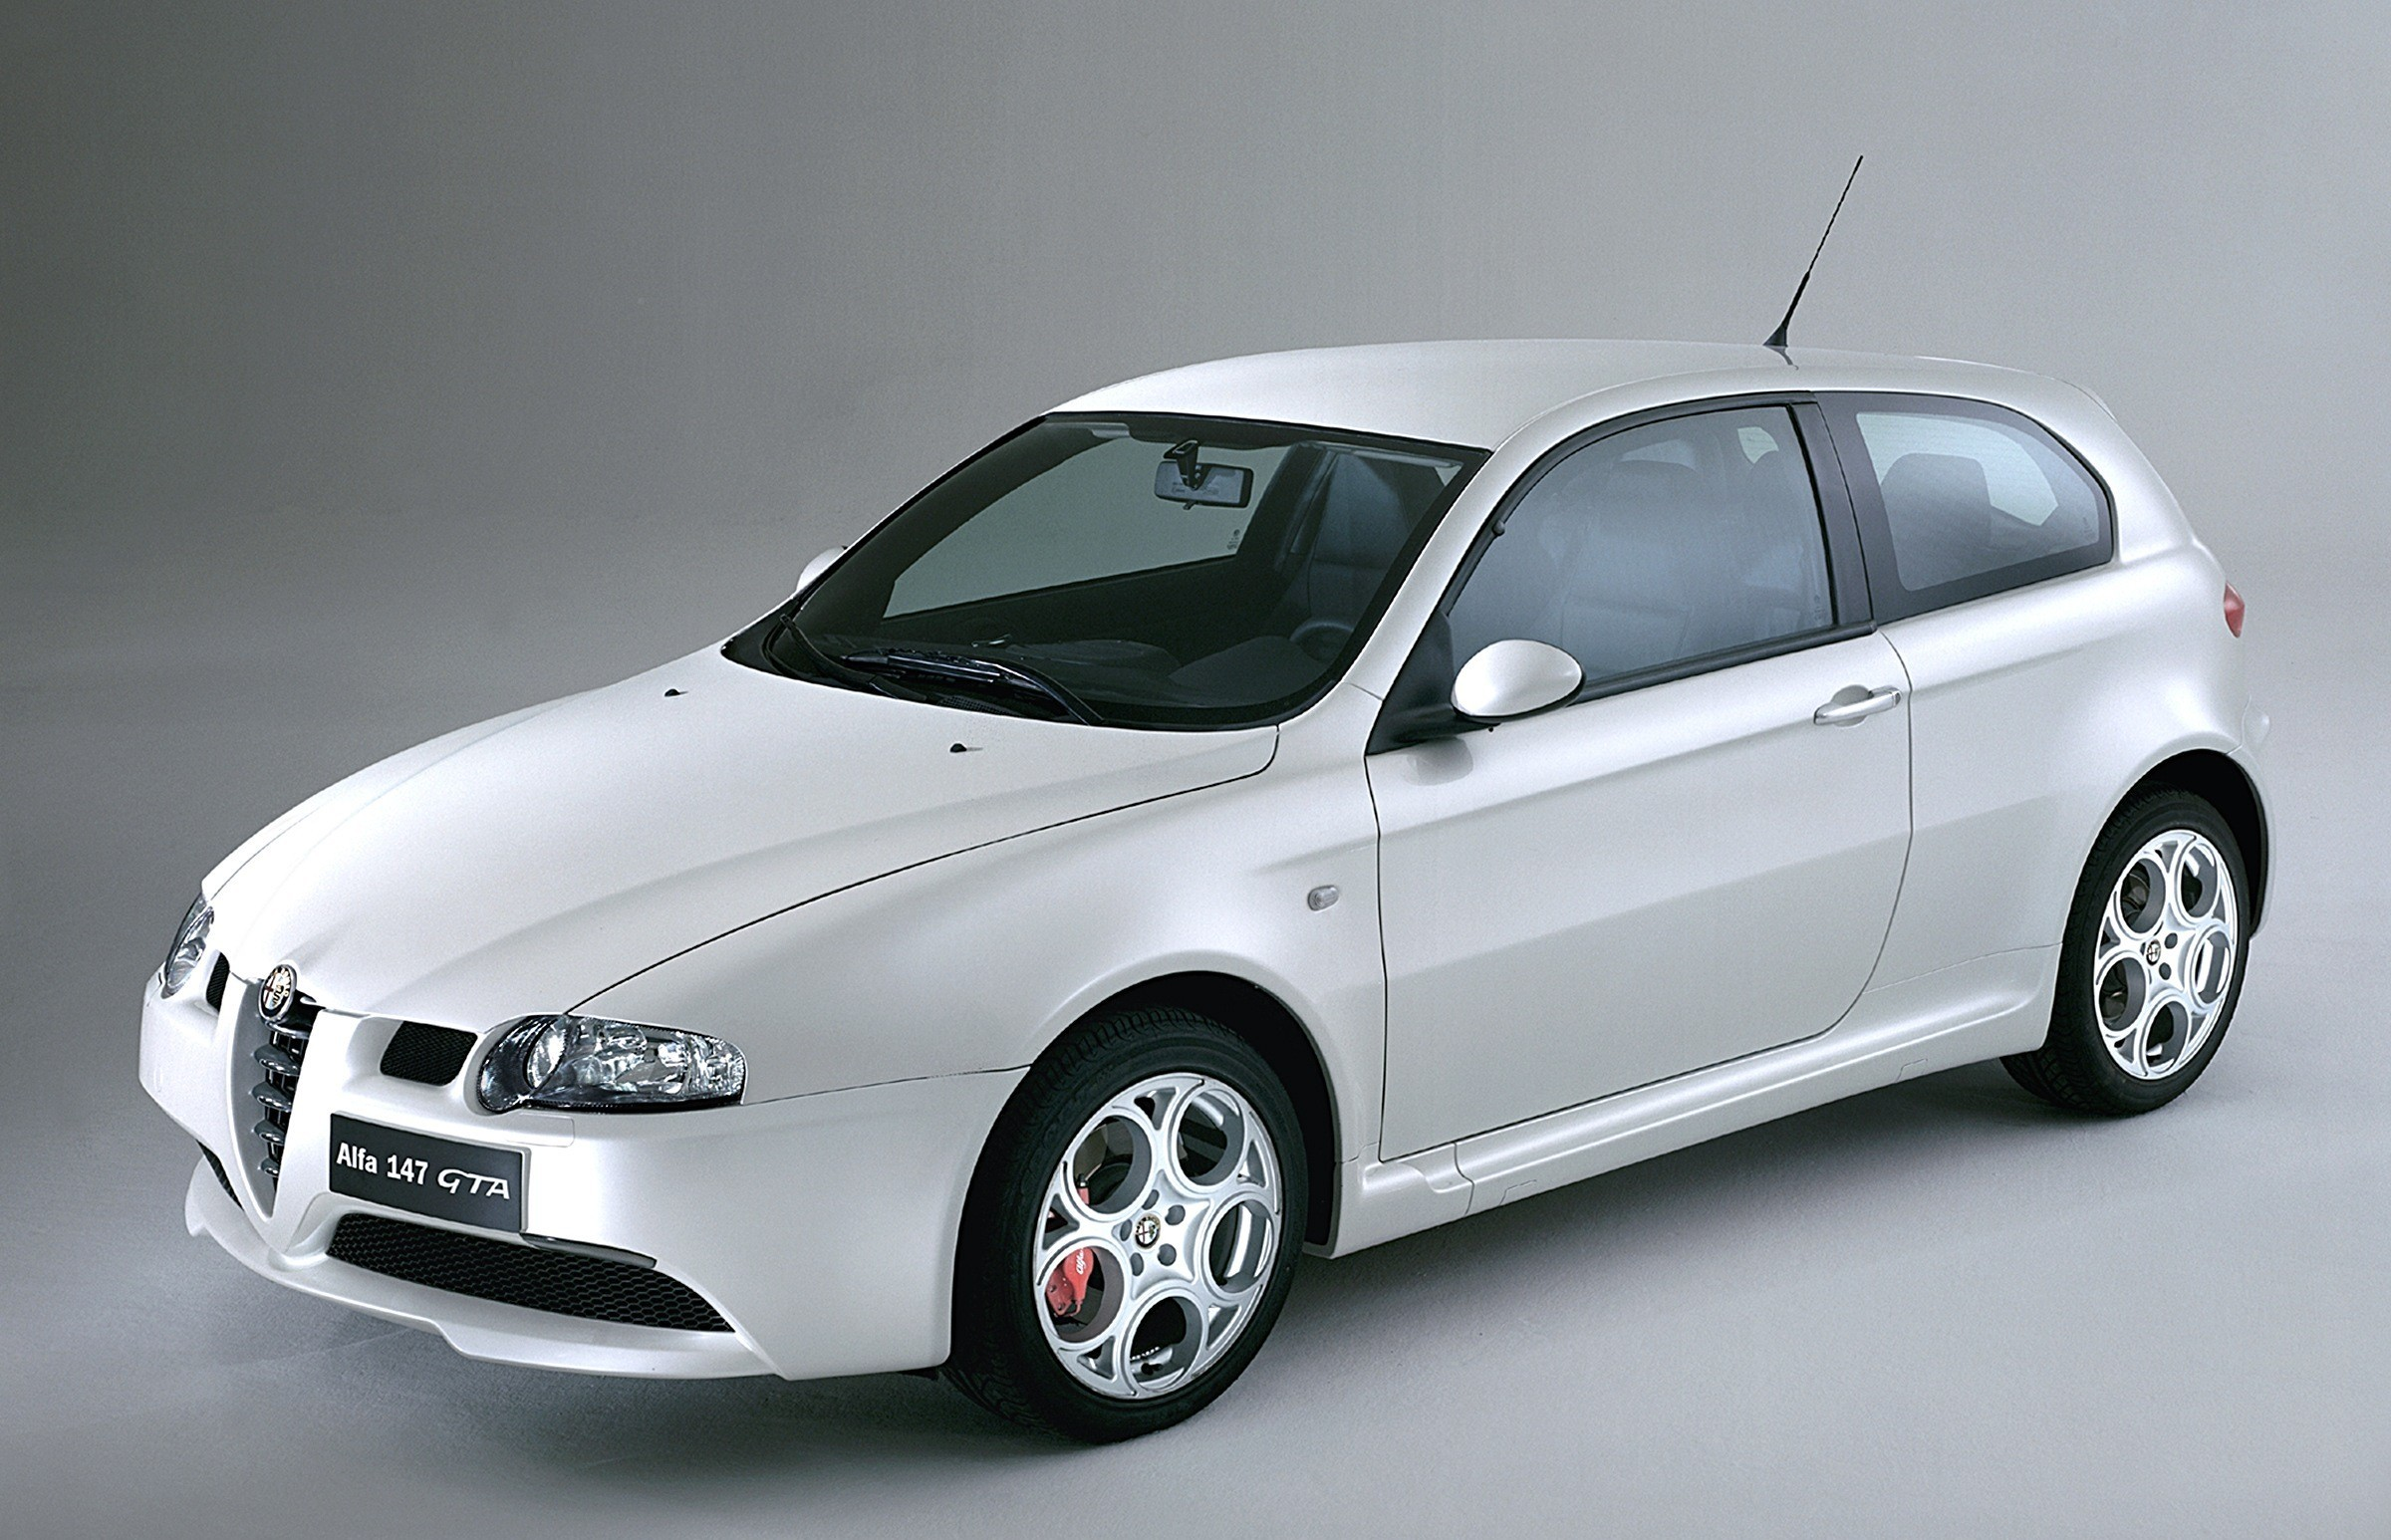 Alfa Romeo 147 GTA 2002 - Picture 13321